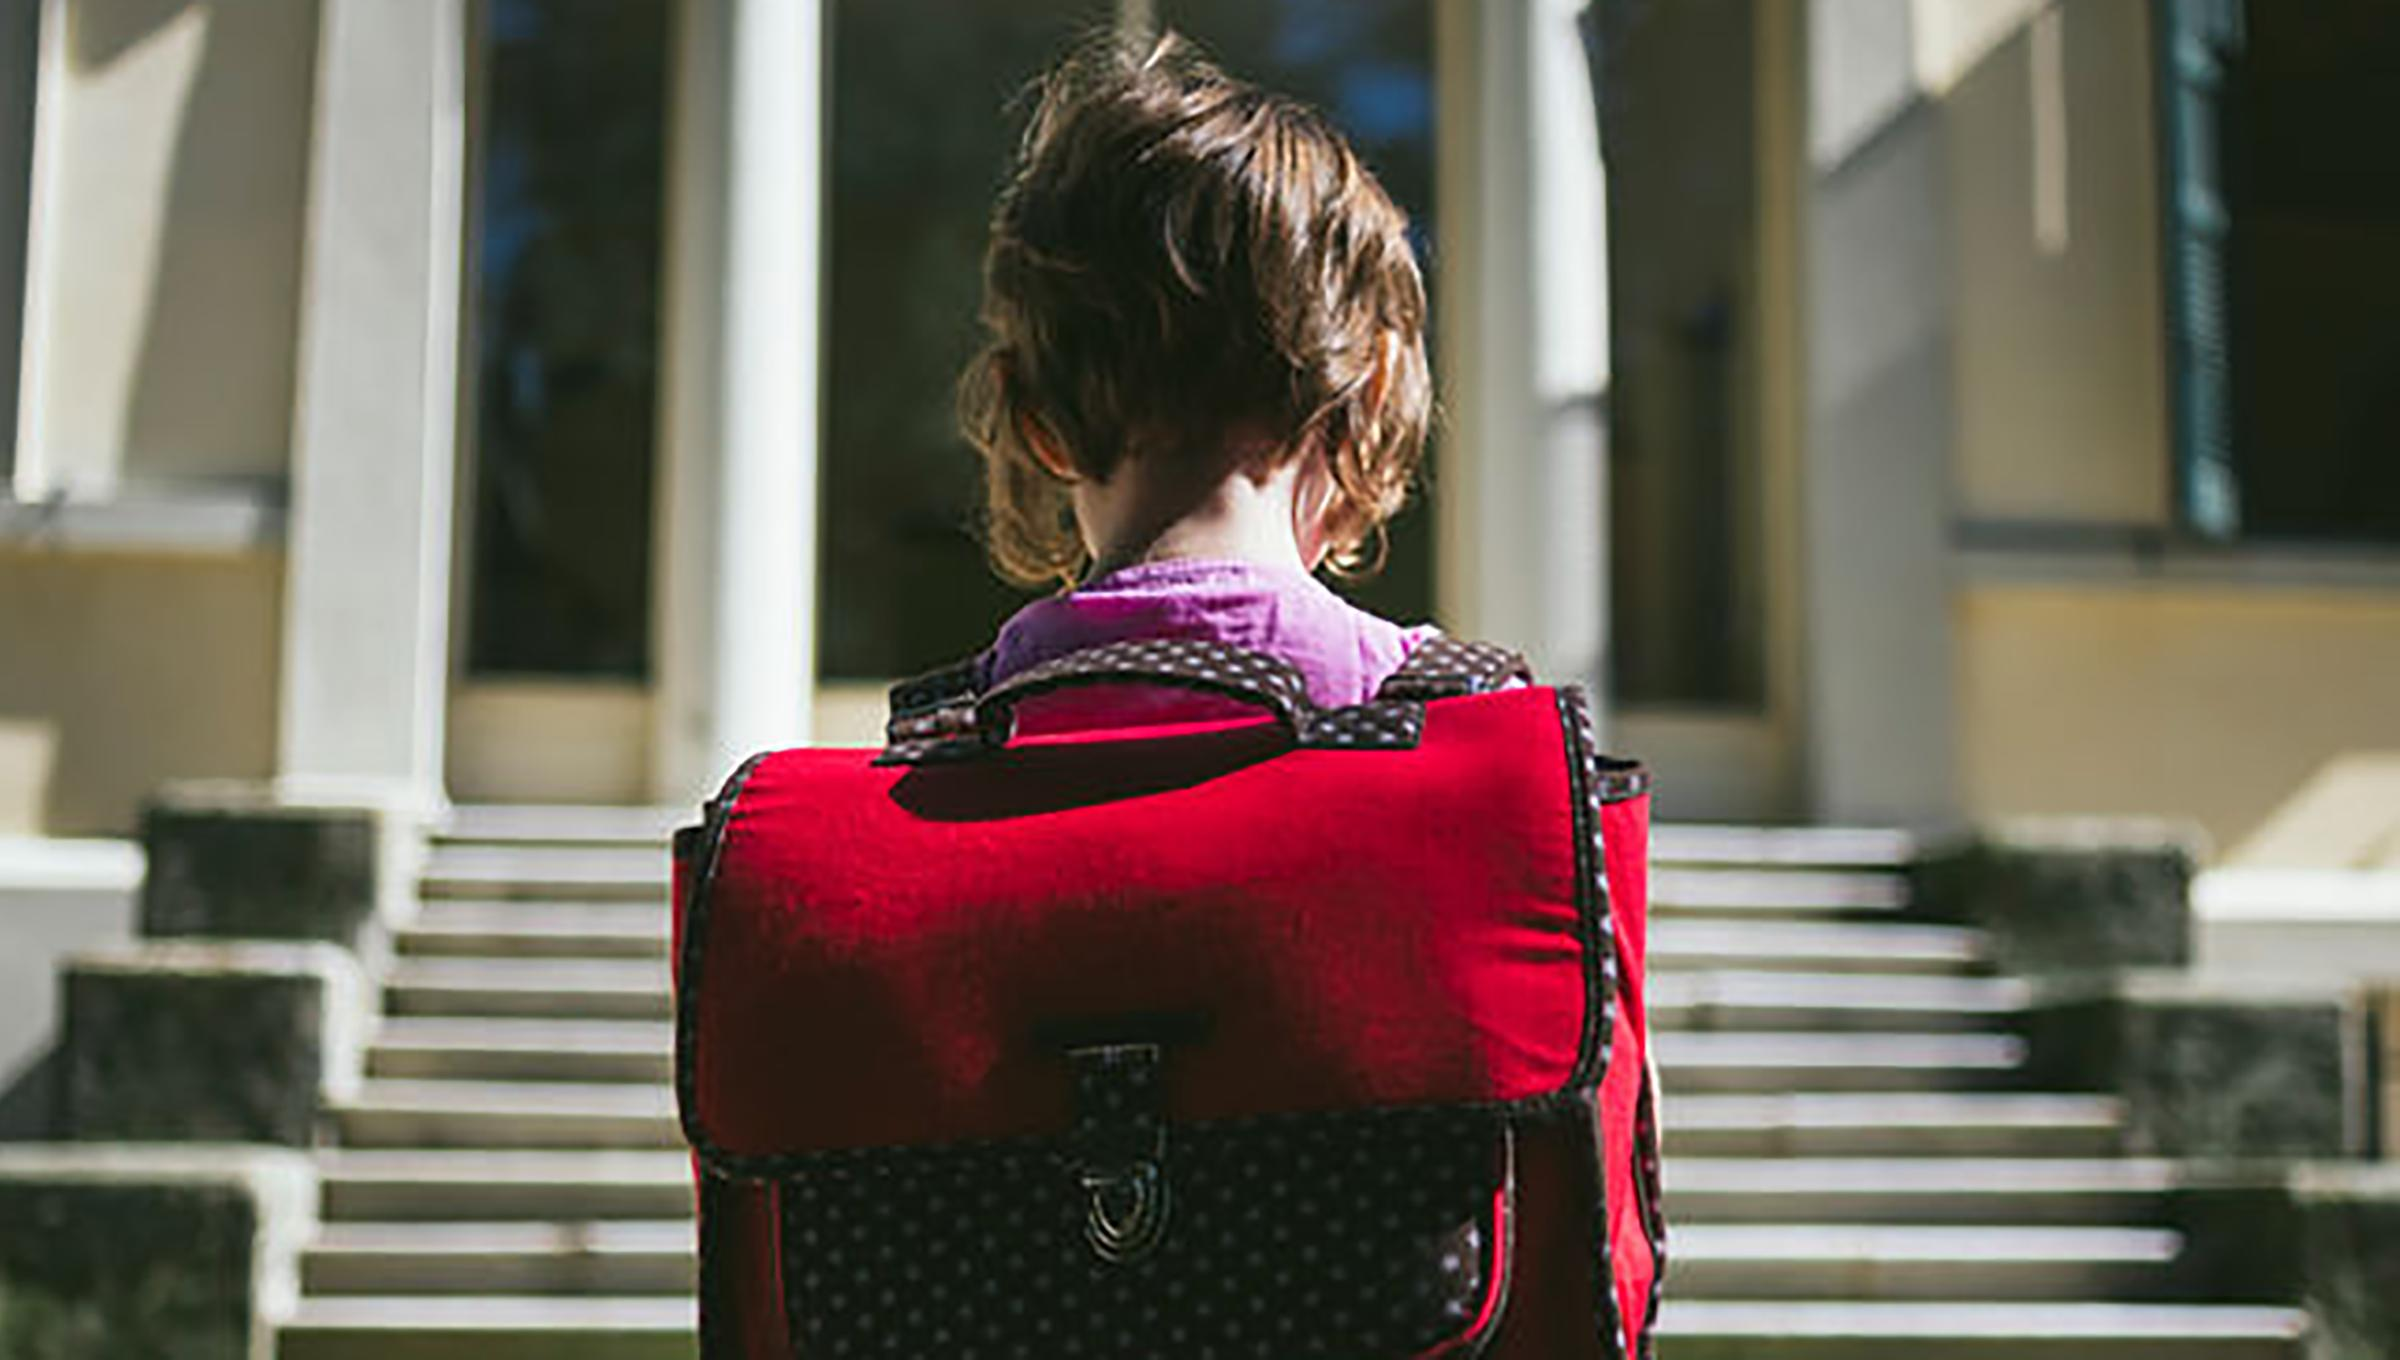 741bfd8a6d1f Child with red backpack on first day of school